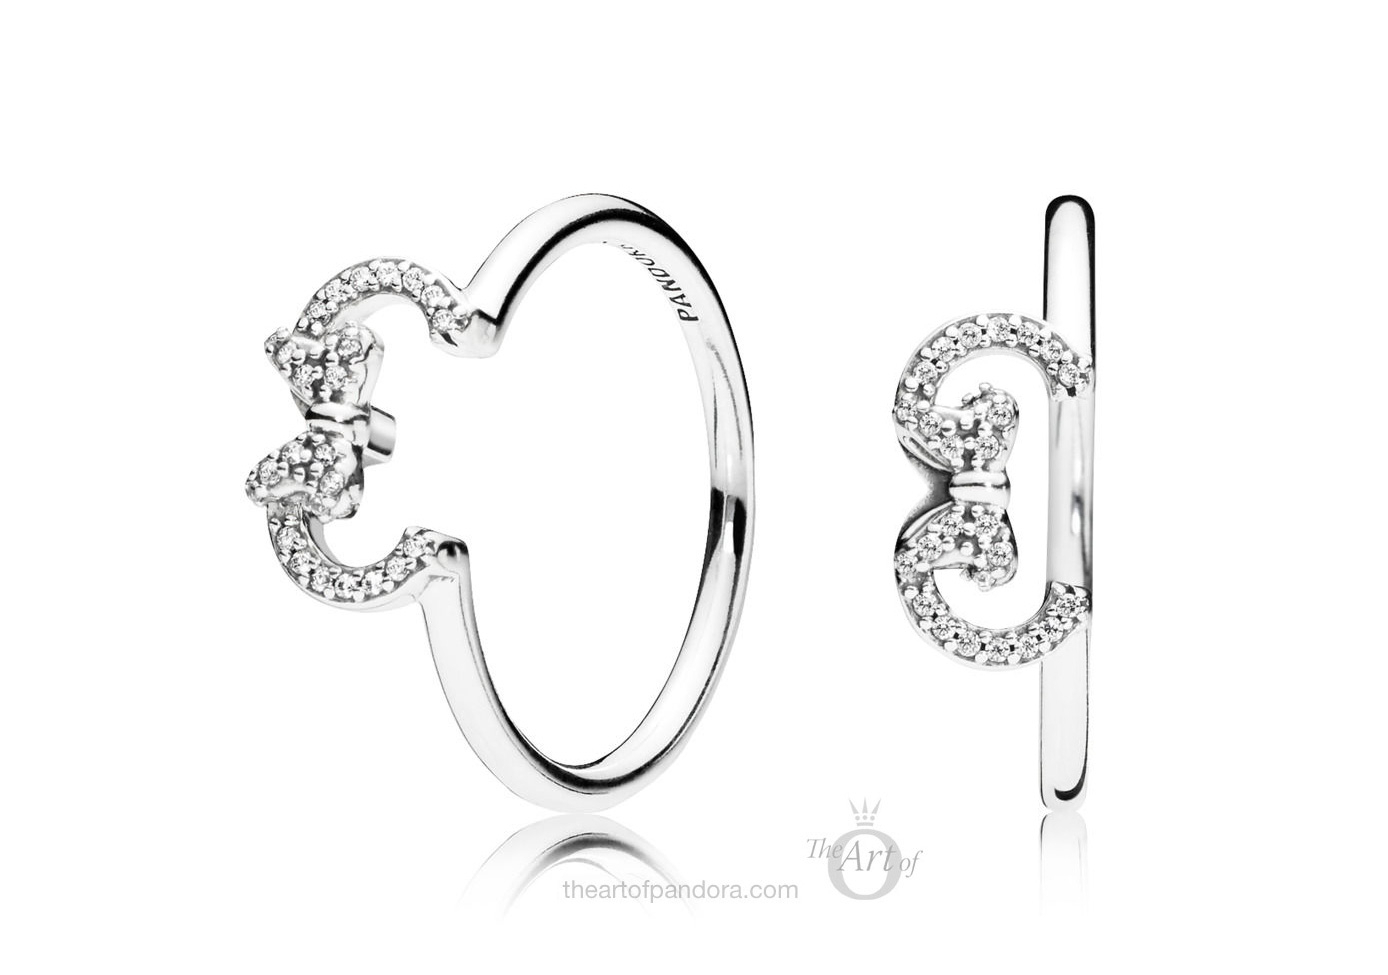 197509Cz Pandora Disney Minnie Silhouette Ring – The Art Of Pandora Pertaining To 2018 Disney Minnie Silhouette Rings (Gallery 1 of 25)